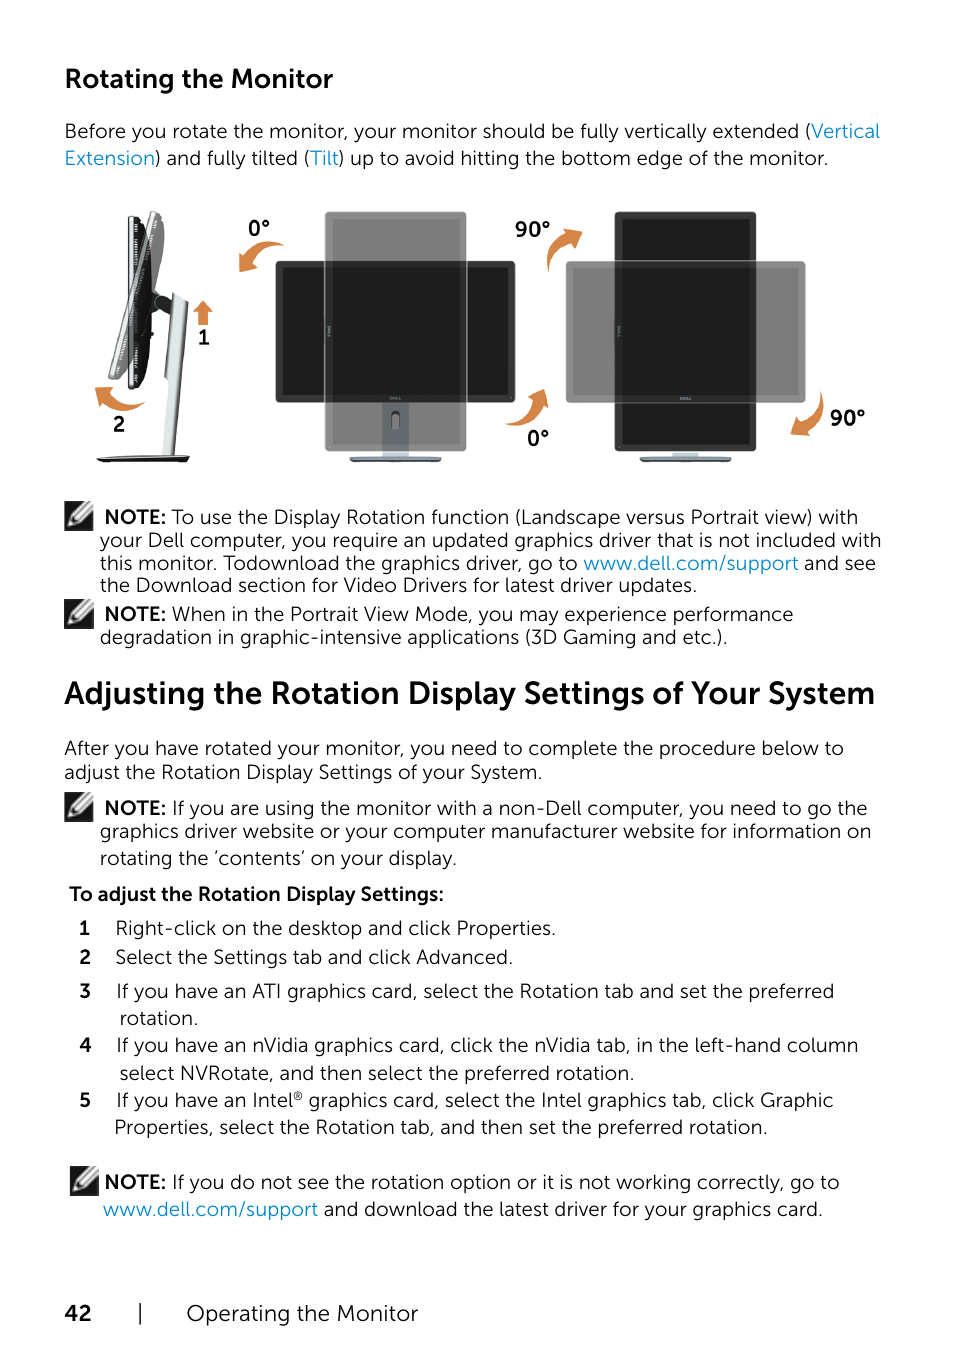 Rotating the monitor | Dell P2715Q Monitor User Manual | Page 42 / 51